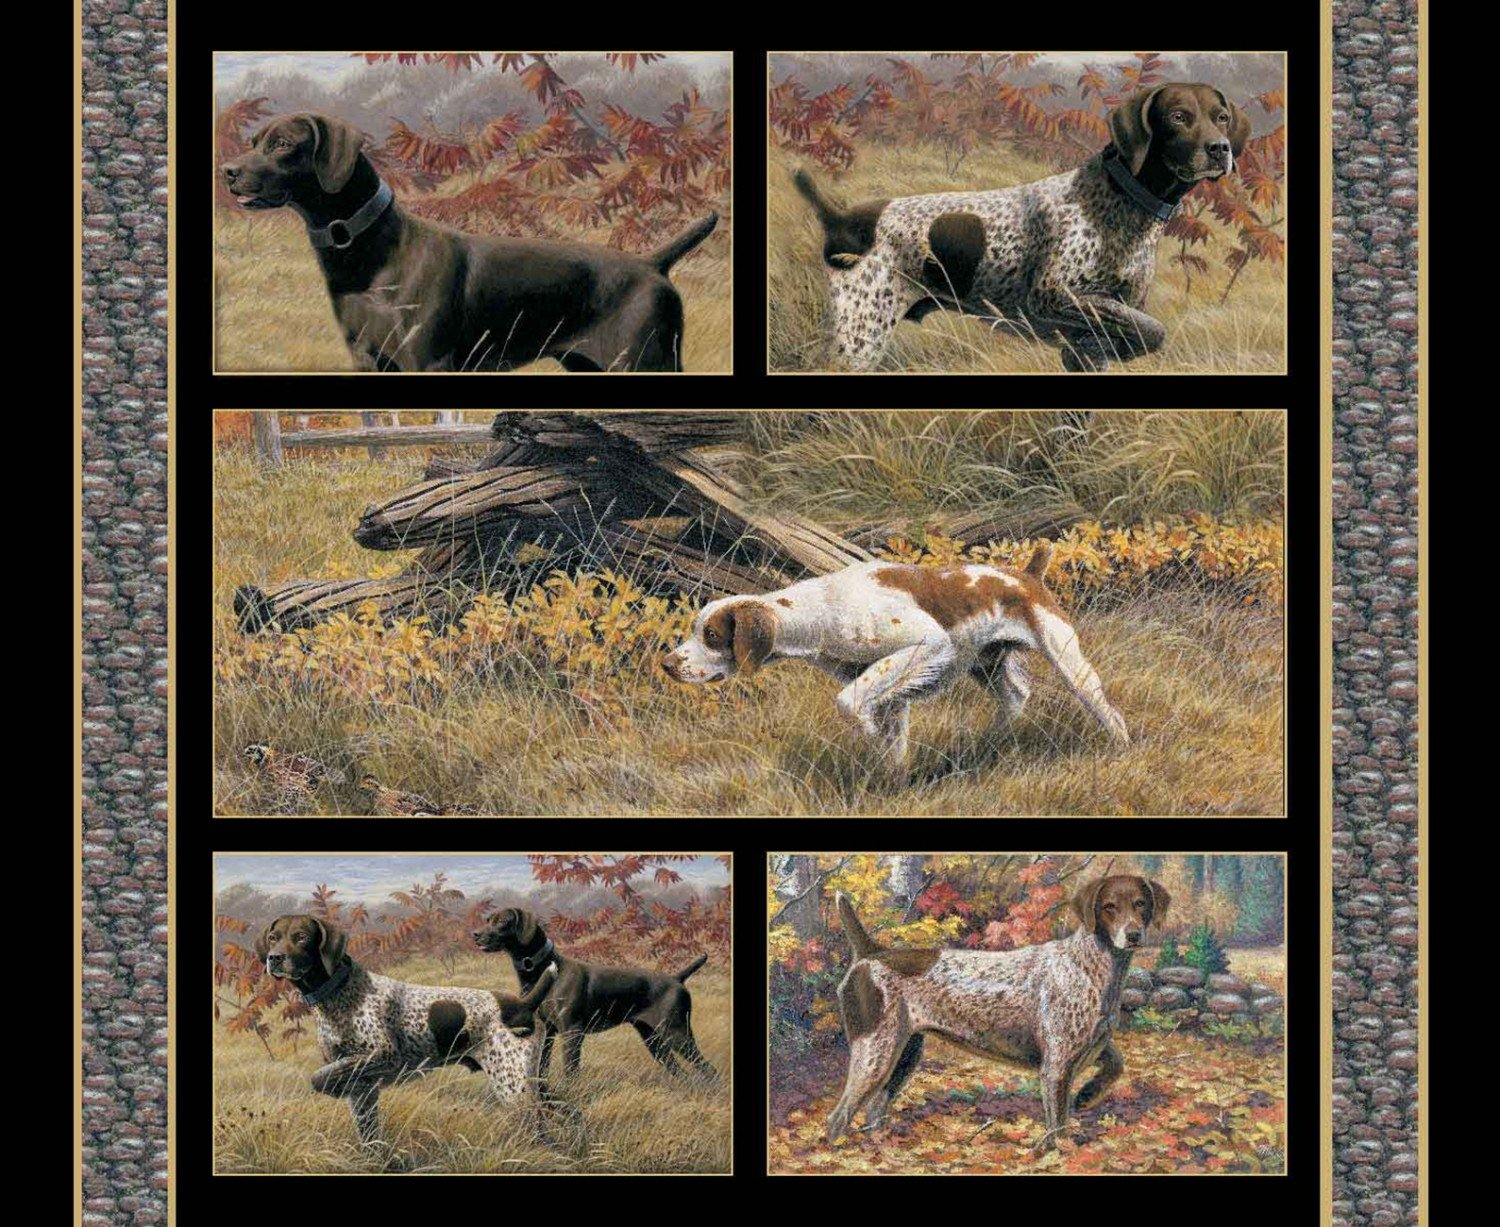 SC-Wild Wings Show Dogs 68446 Wallhanging